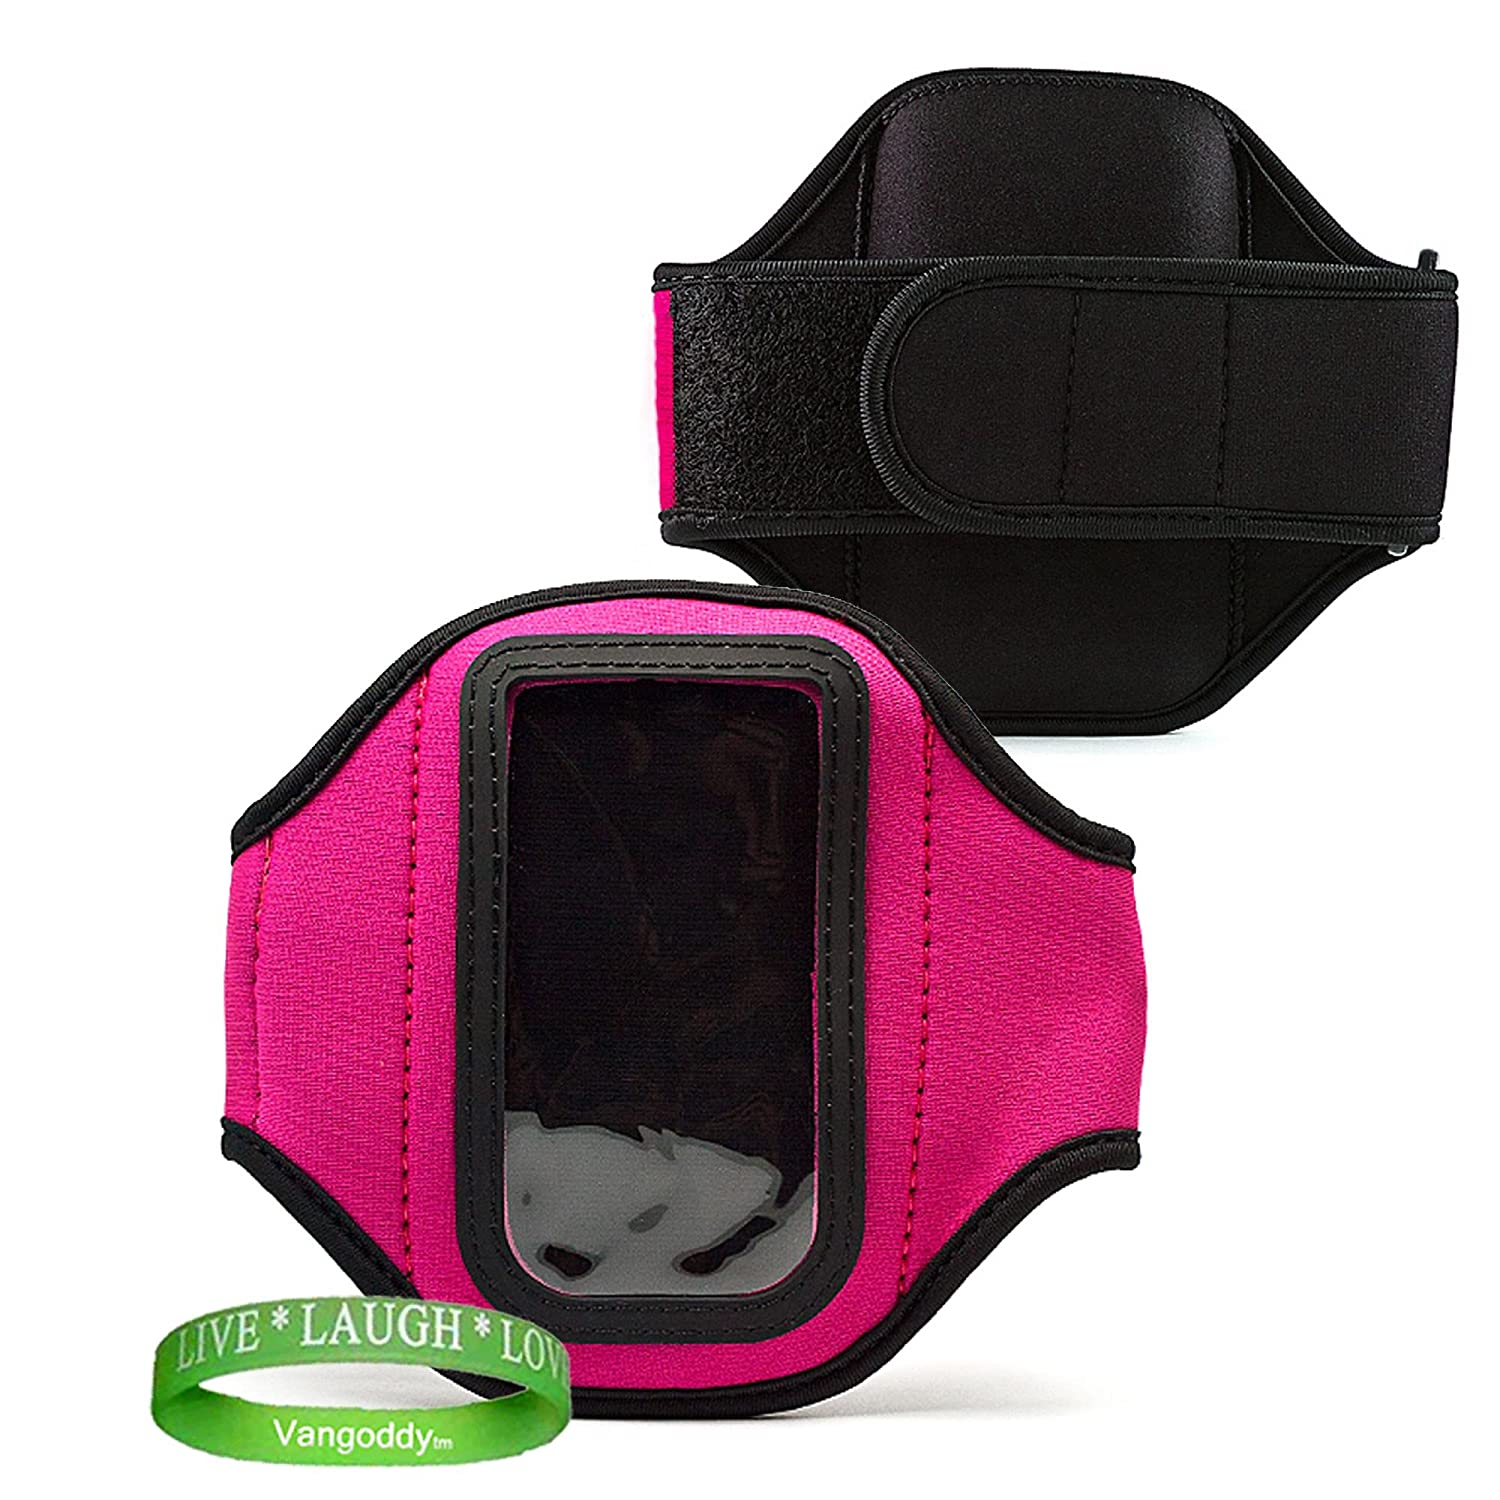 Elegant OEM VG Brand (PINK) Armband with Sweat Resistant Lining and Unique Key Pocket for Samsung Pantech Burst Smart Phone + Live * Laugh * Love VanGoddy Wrist Band!!! pantech vega lte ex